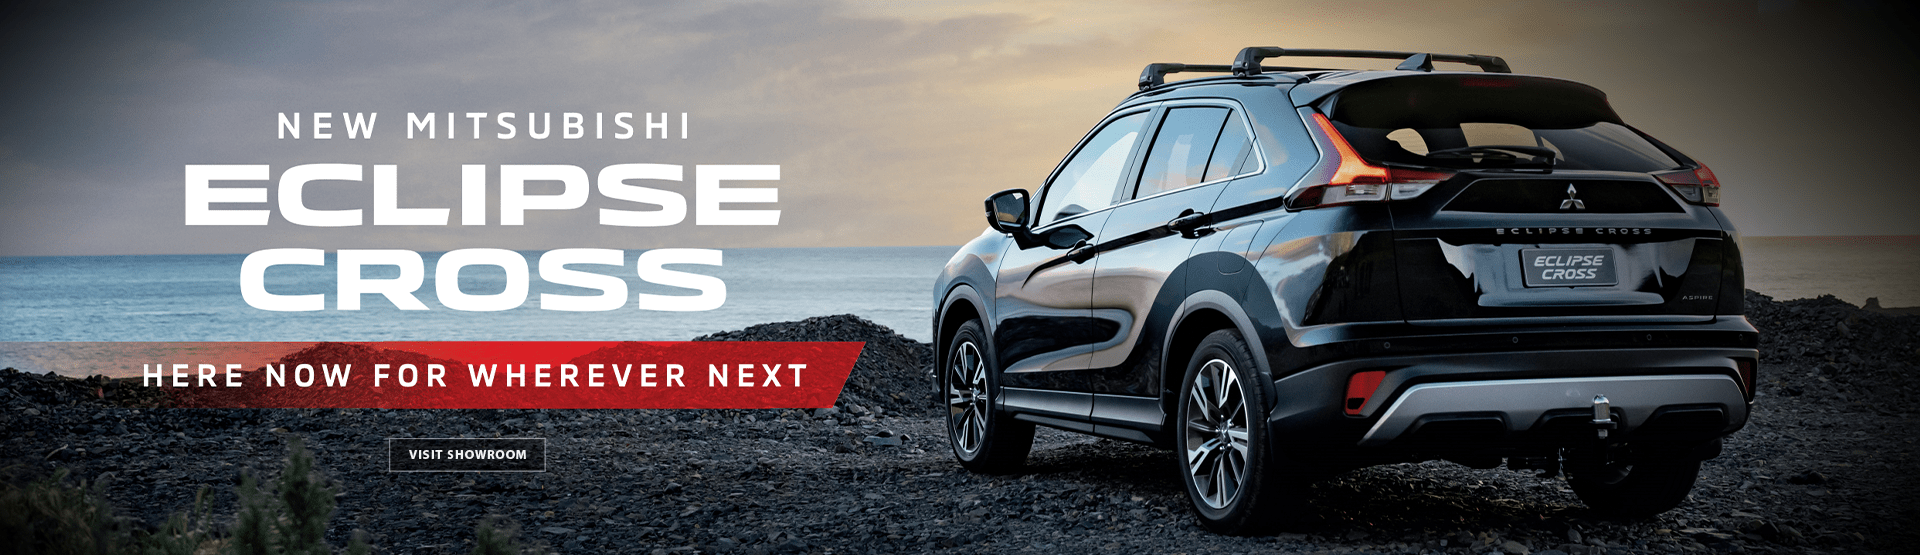 New Mitsubishi Eclipse Cross - Here now for wherever next